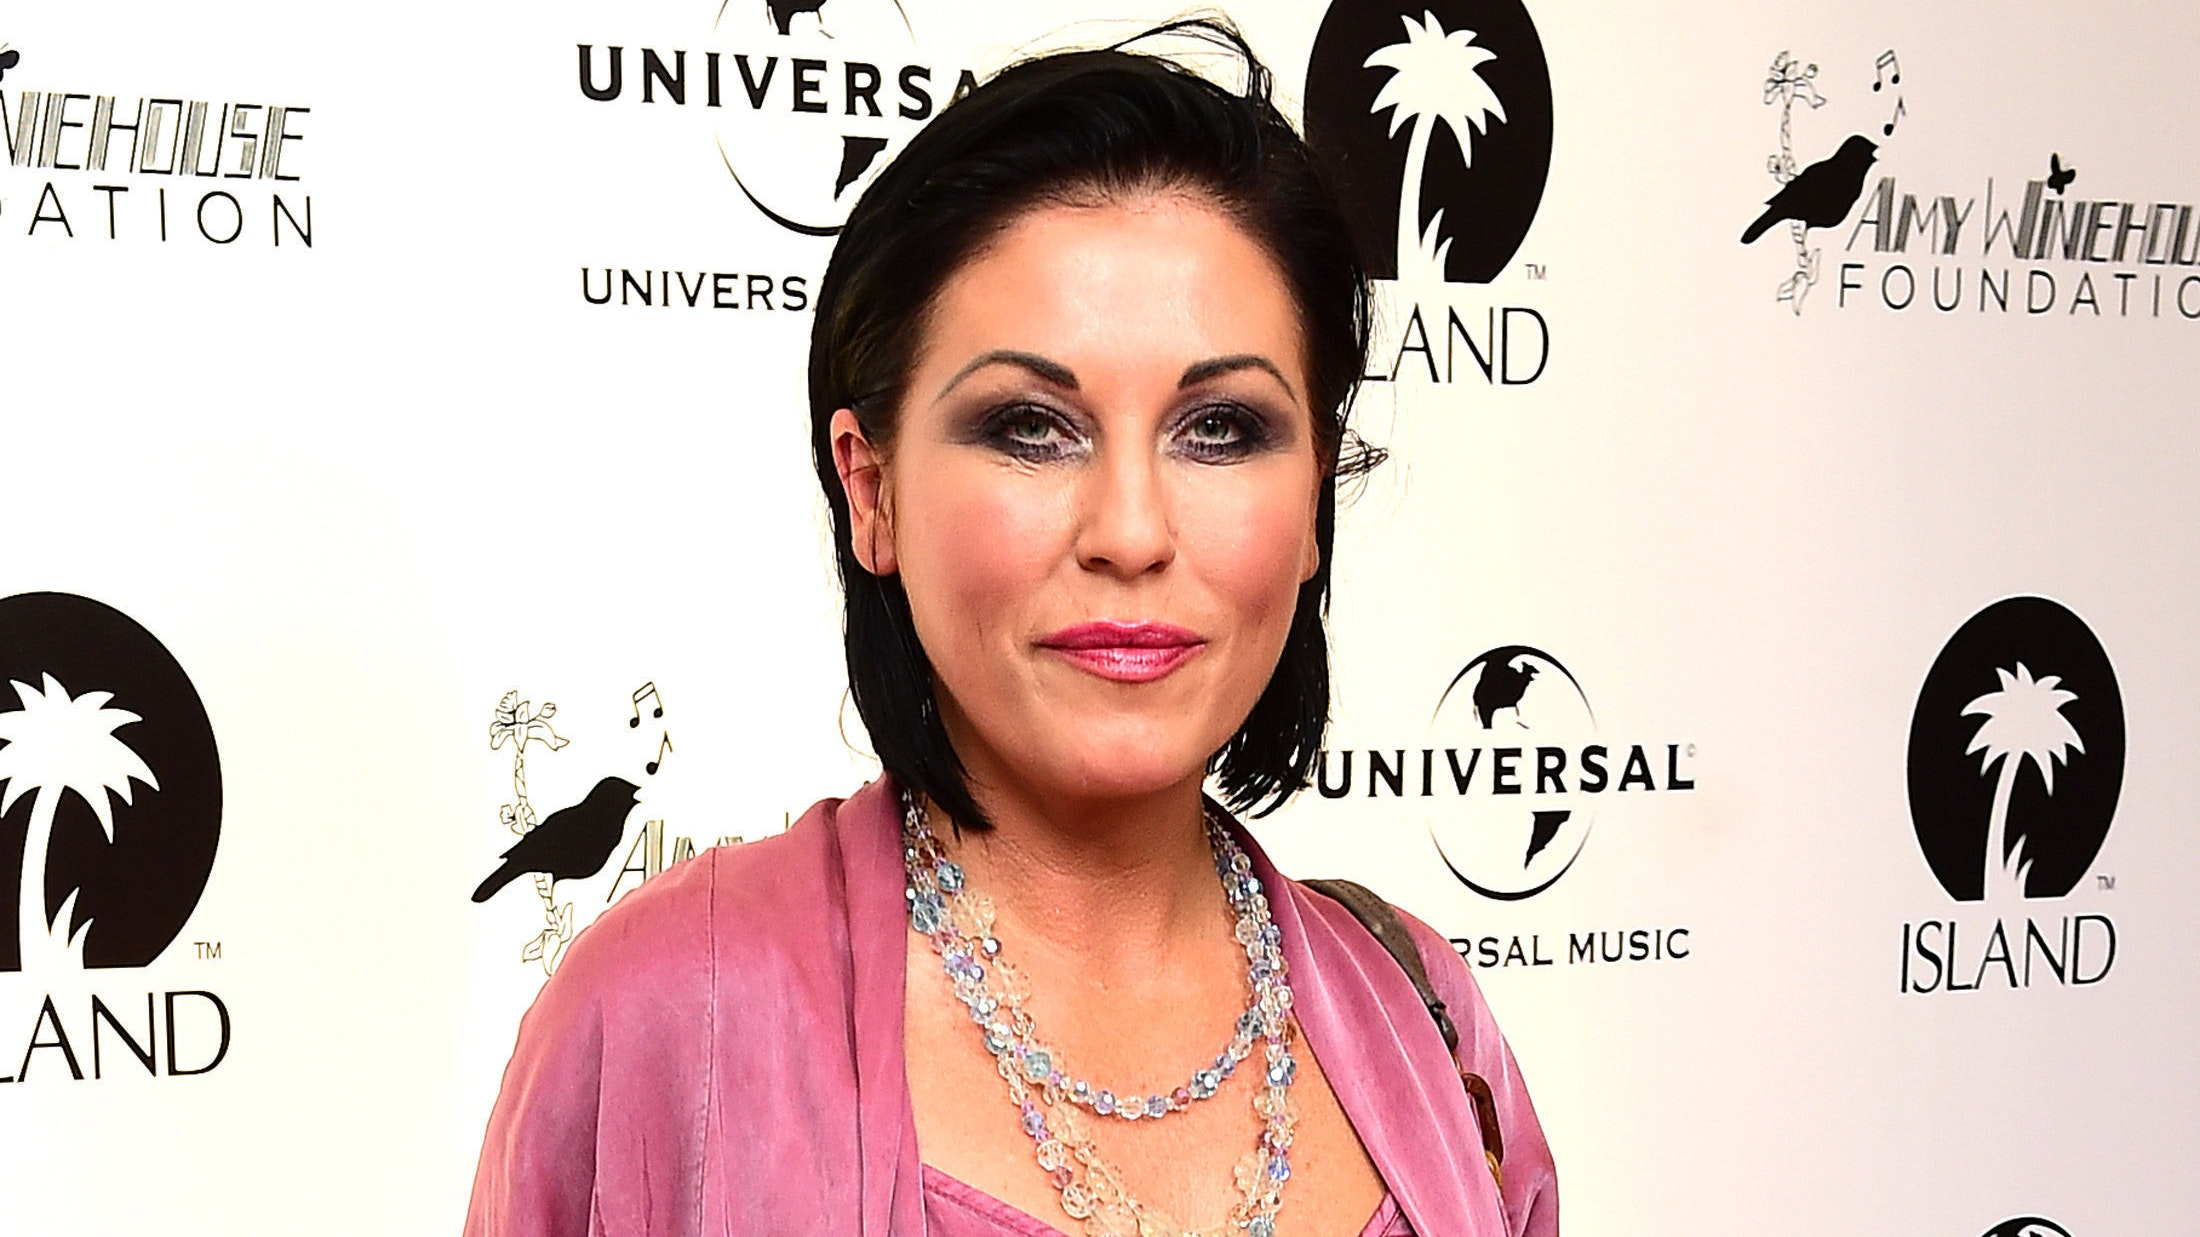 Kat Slater Is Dead... Or Is She?